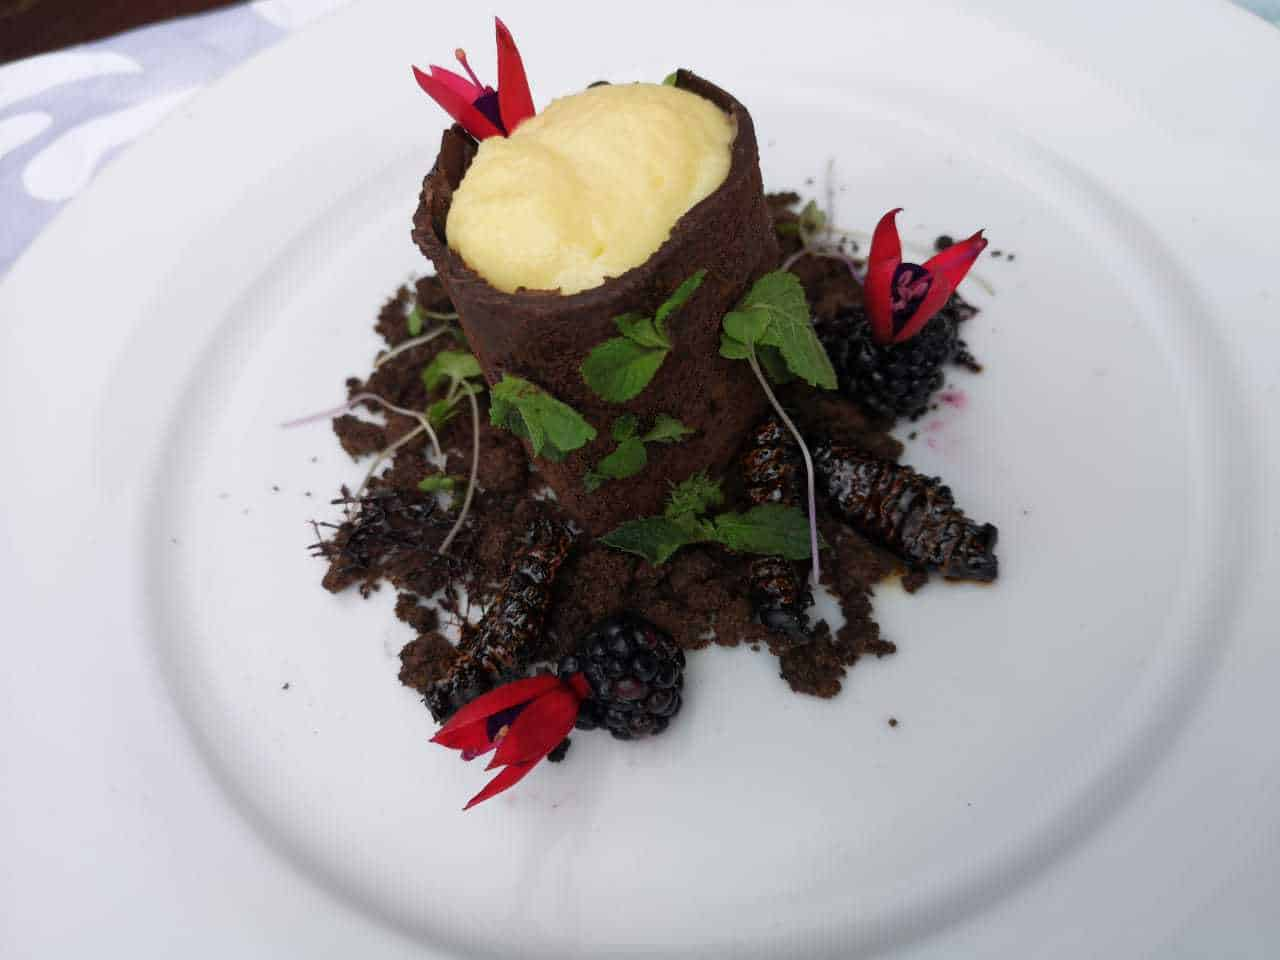 Chef Unaty Daniel's Mopane Worm Chocolate Tree and Ginger Crumble Soil recipe